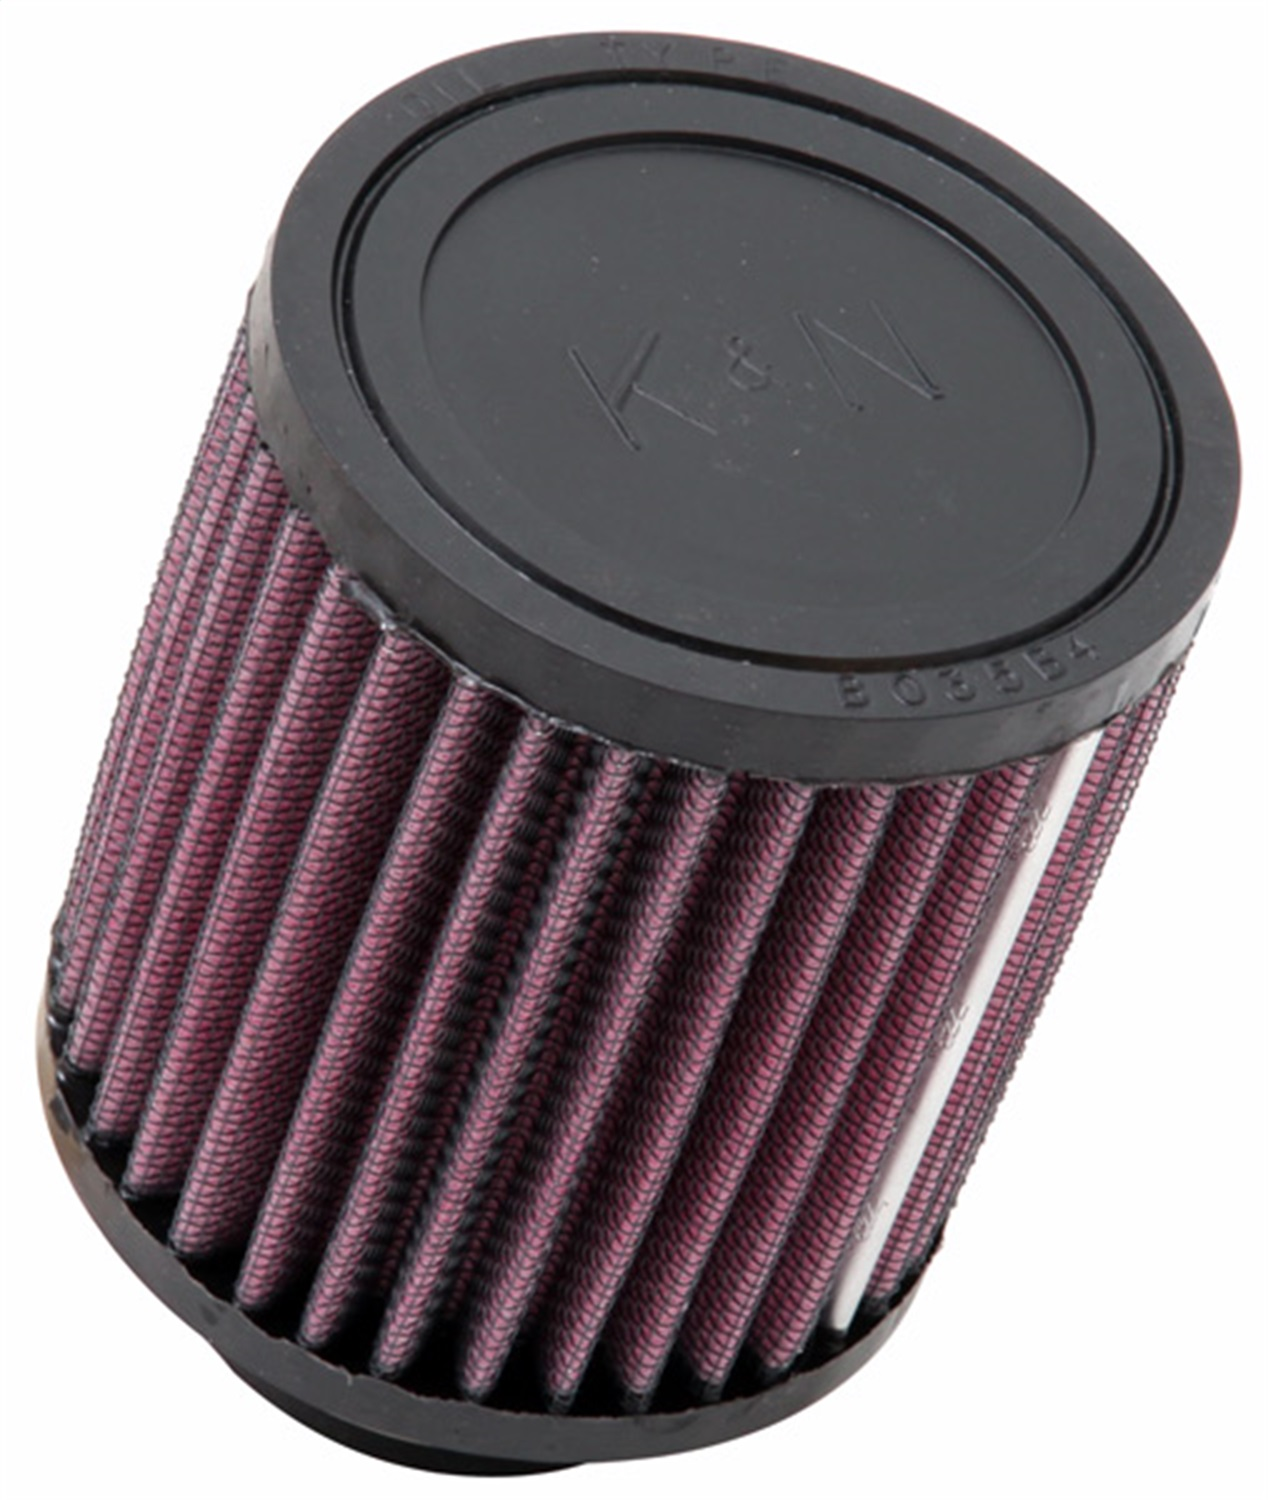 K & N RD-0450 Universal Rubber Filter 226557410